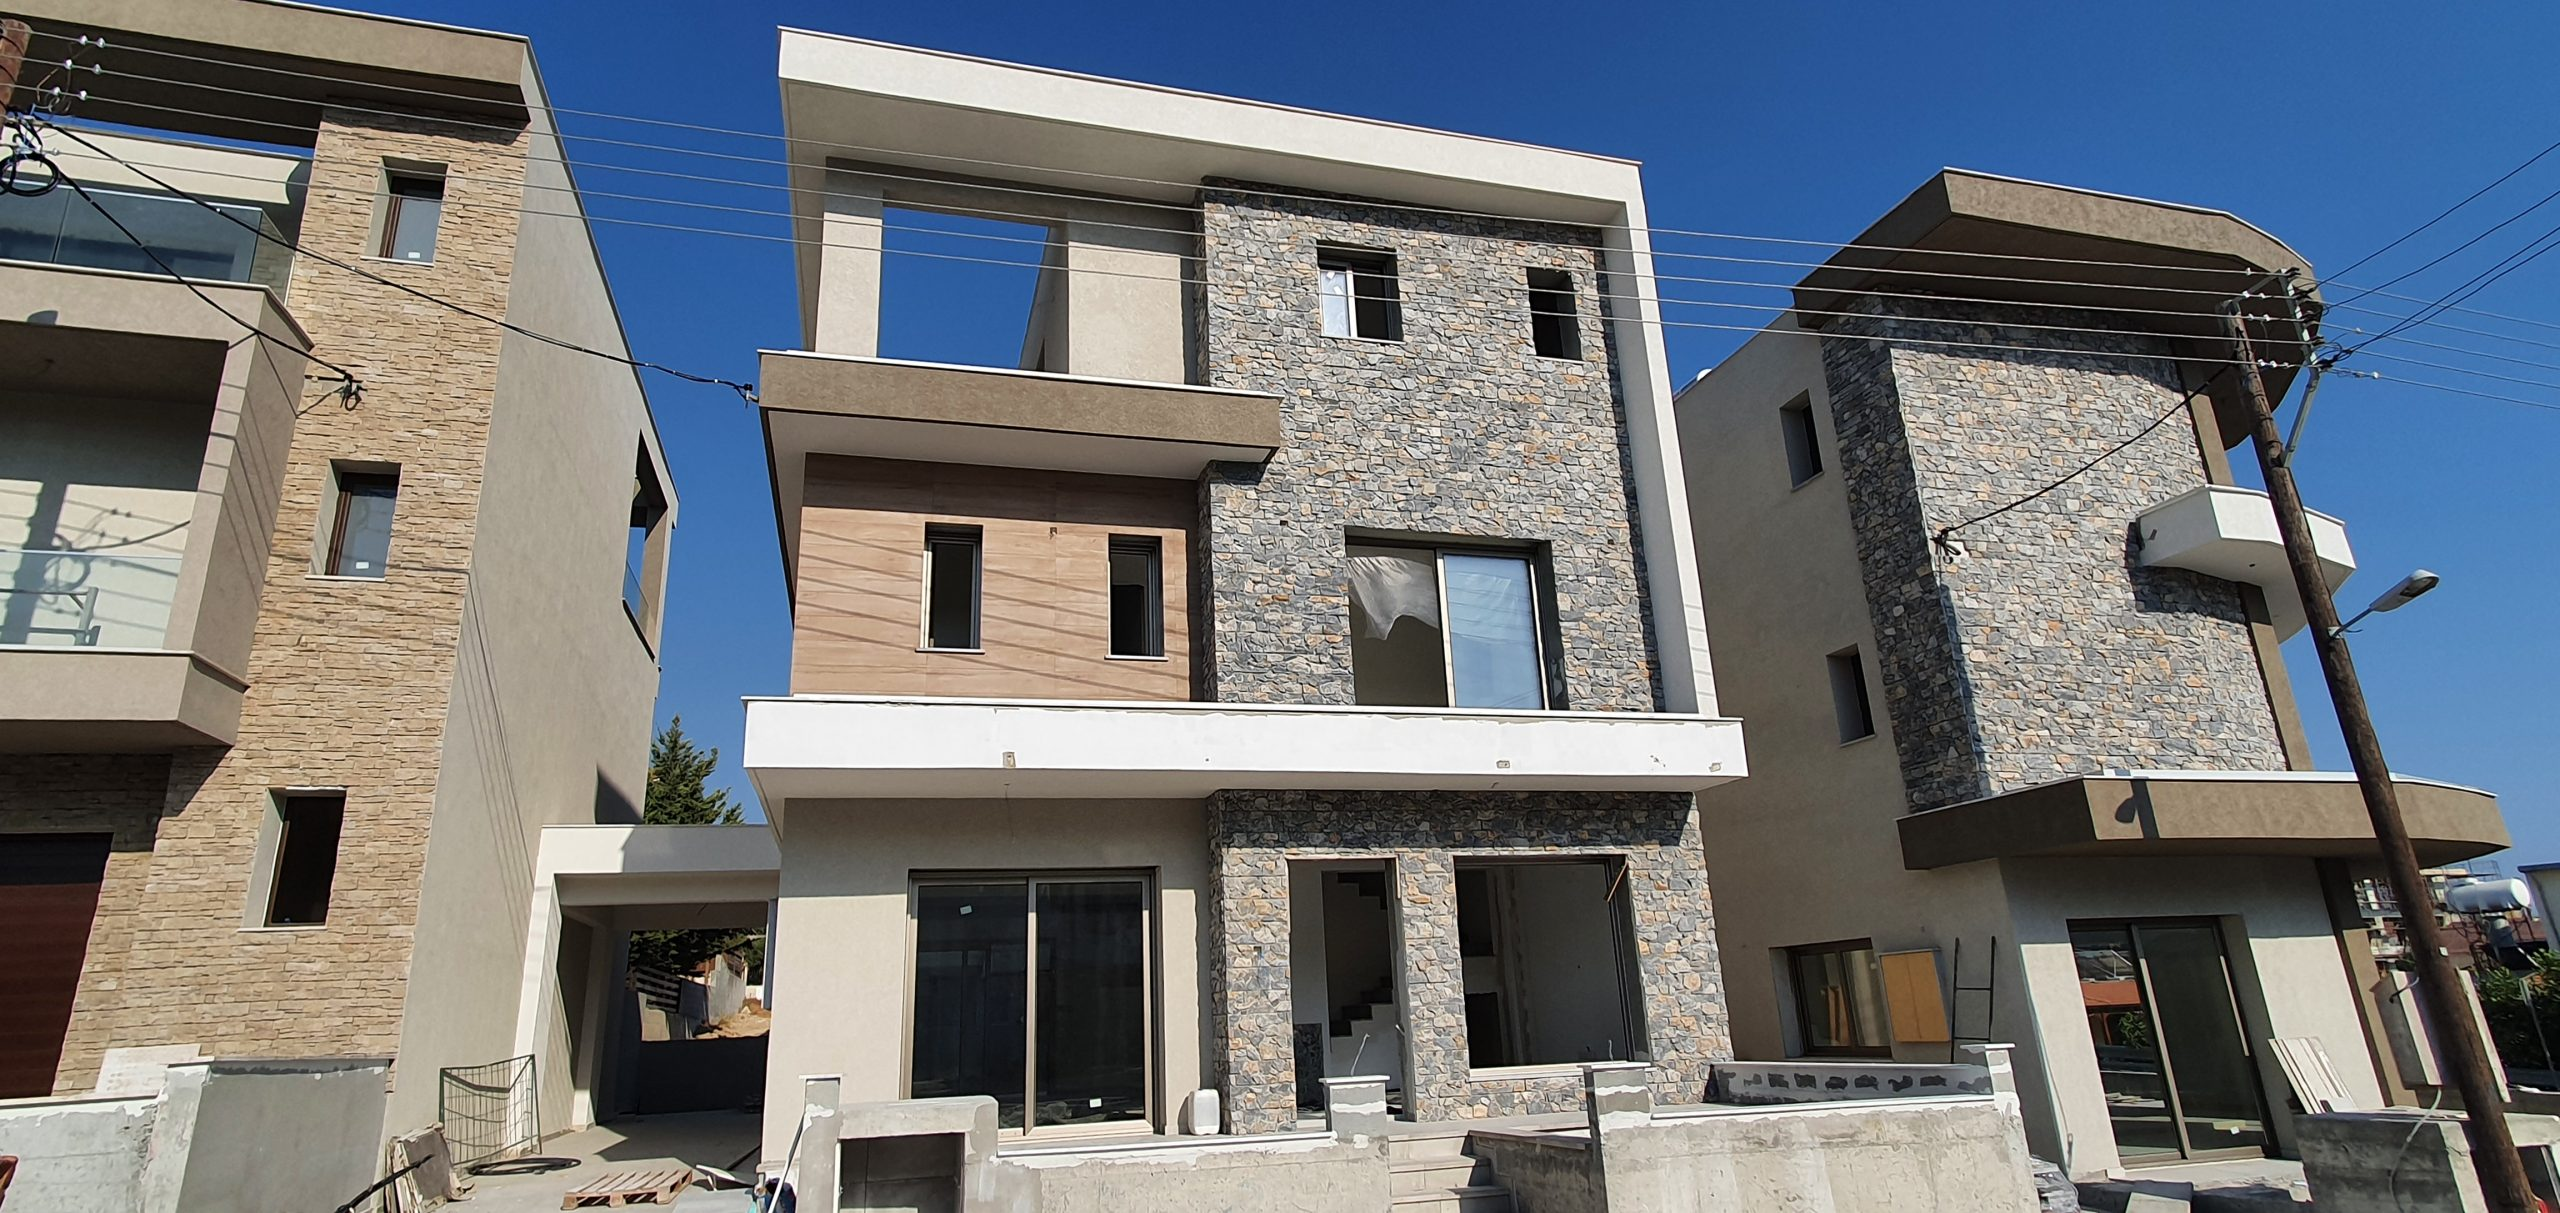 4 bed house in Agios Athanasios